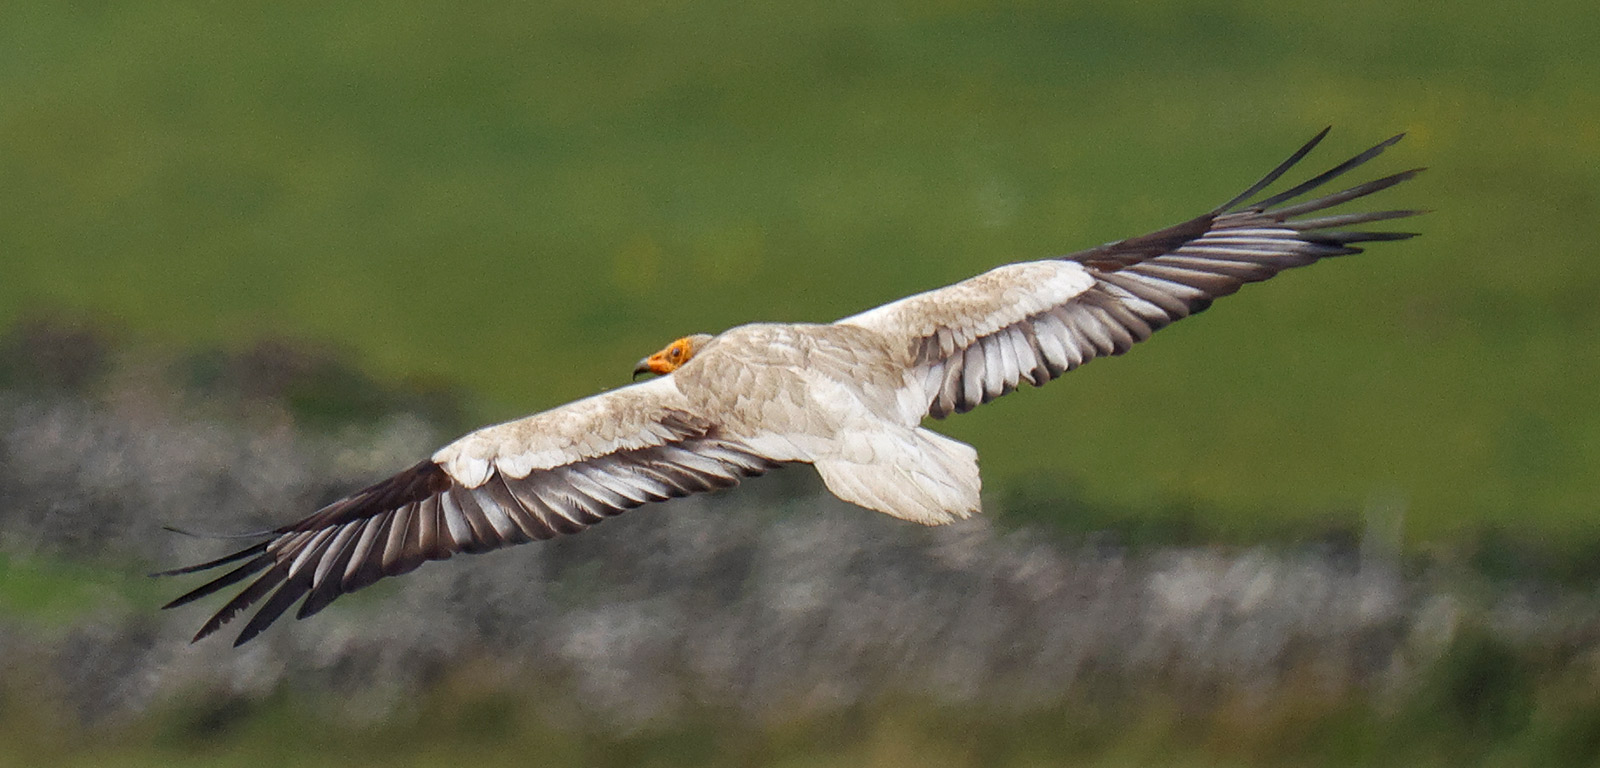 Egyptian Vulture, Co. Donegal, Ireland.